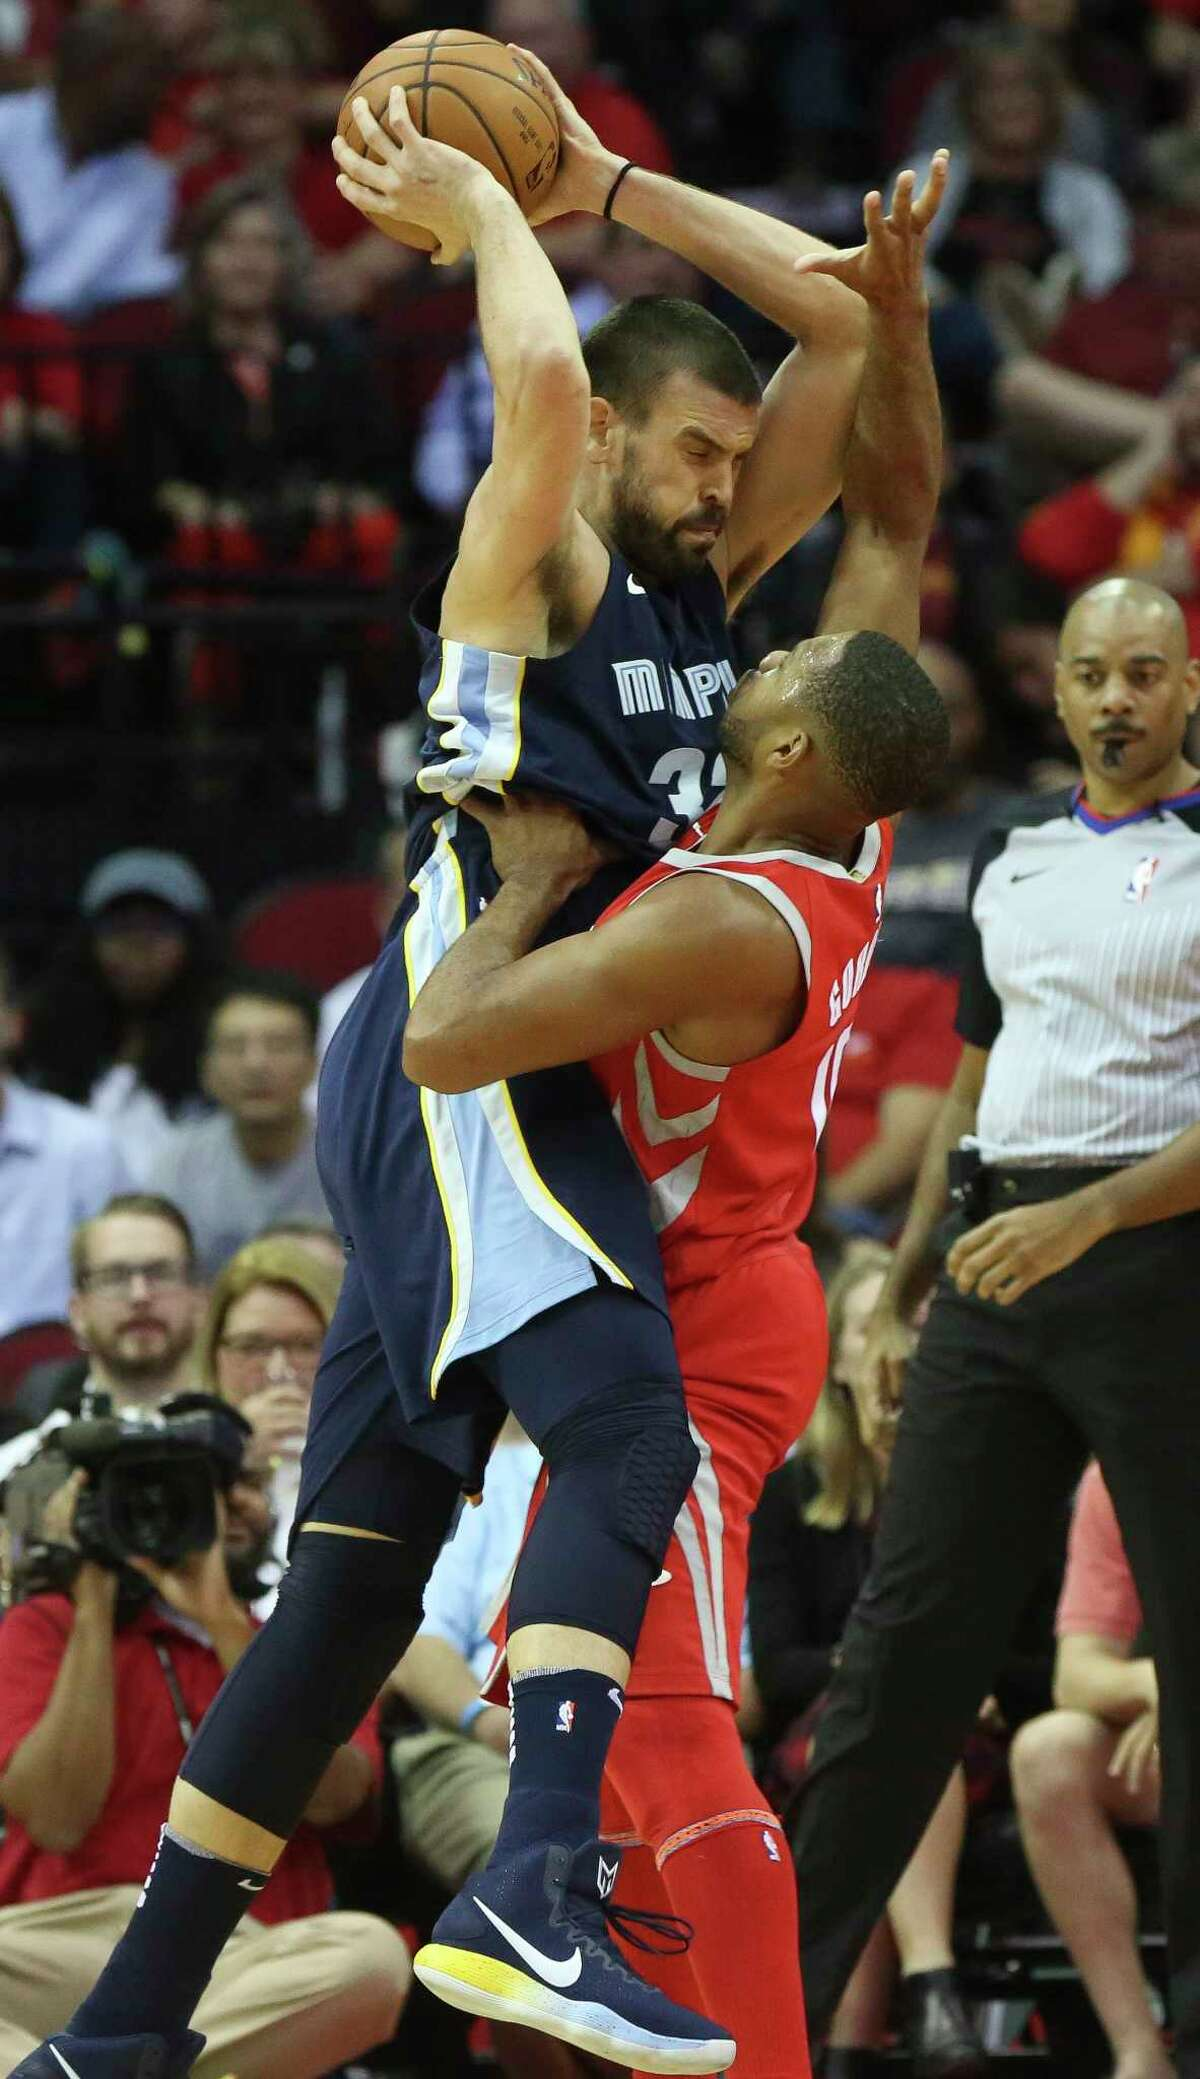 Memphis Grizzlies center Marc Gasol (33) cannot move toward the basket while being defensed by Houston Rockets guard Eric Gordon (10) during the second quarter of the NBA game at Toyota Center Monday, Oct. 23, 2017, in Houston.